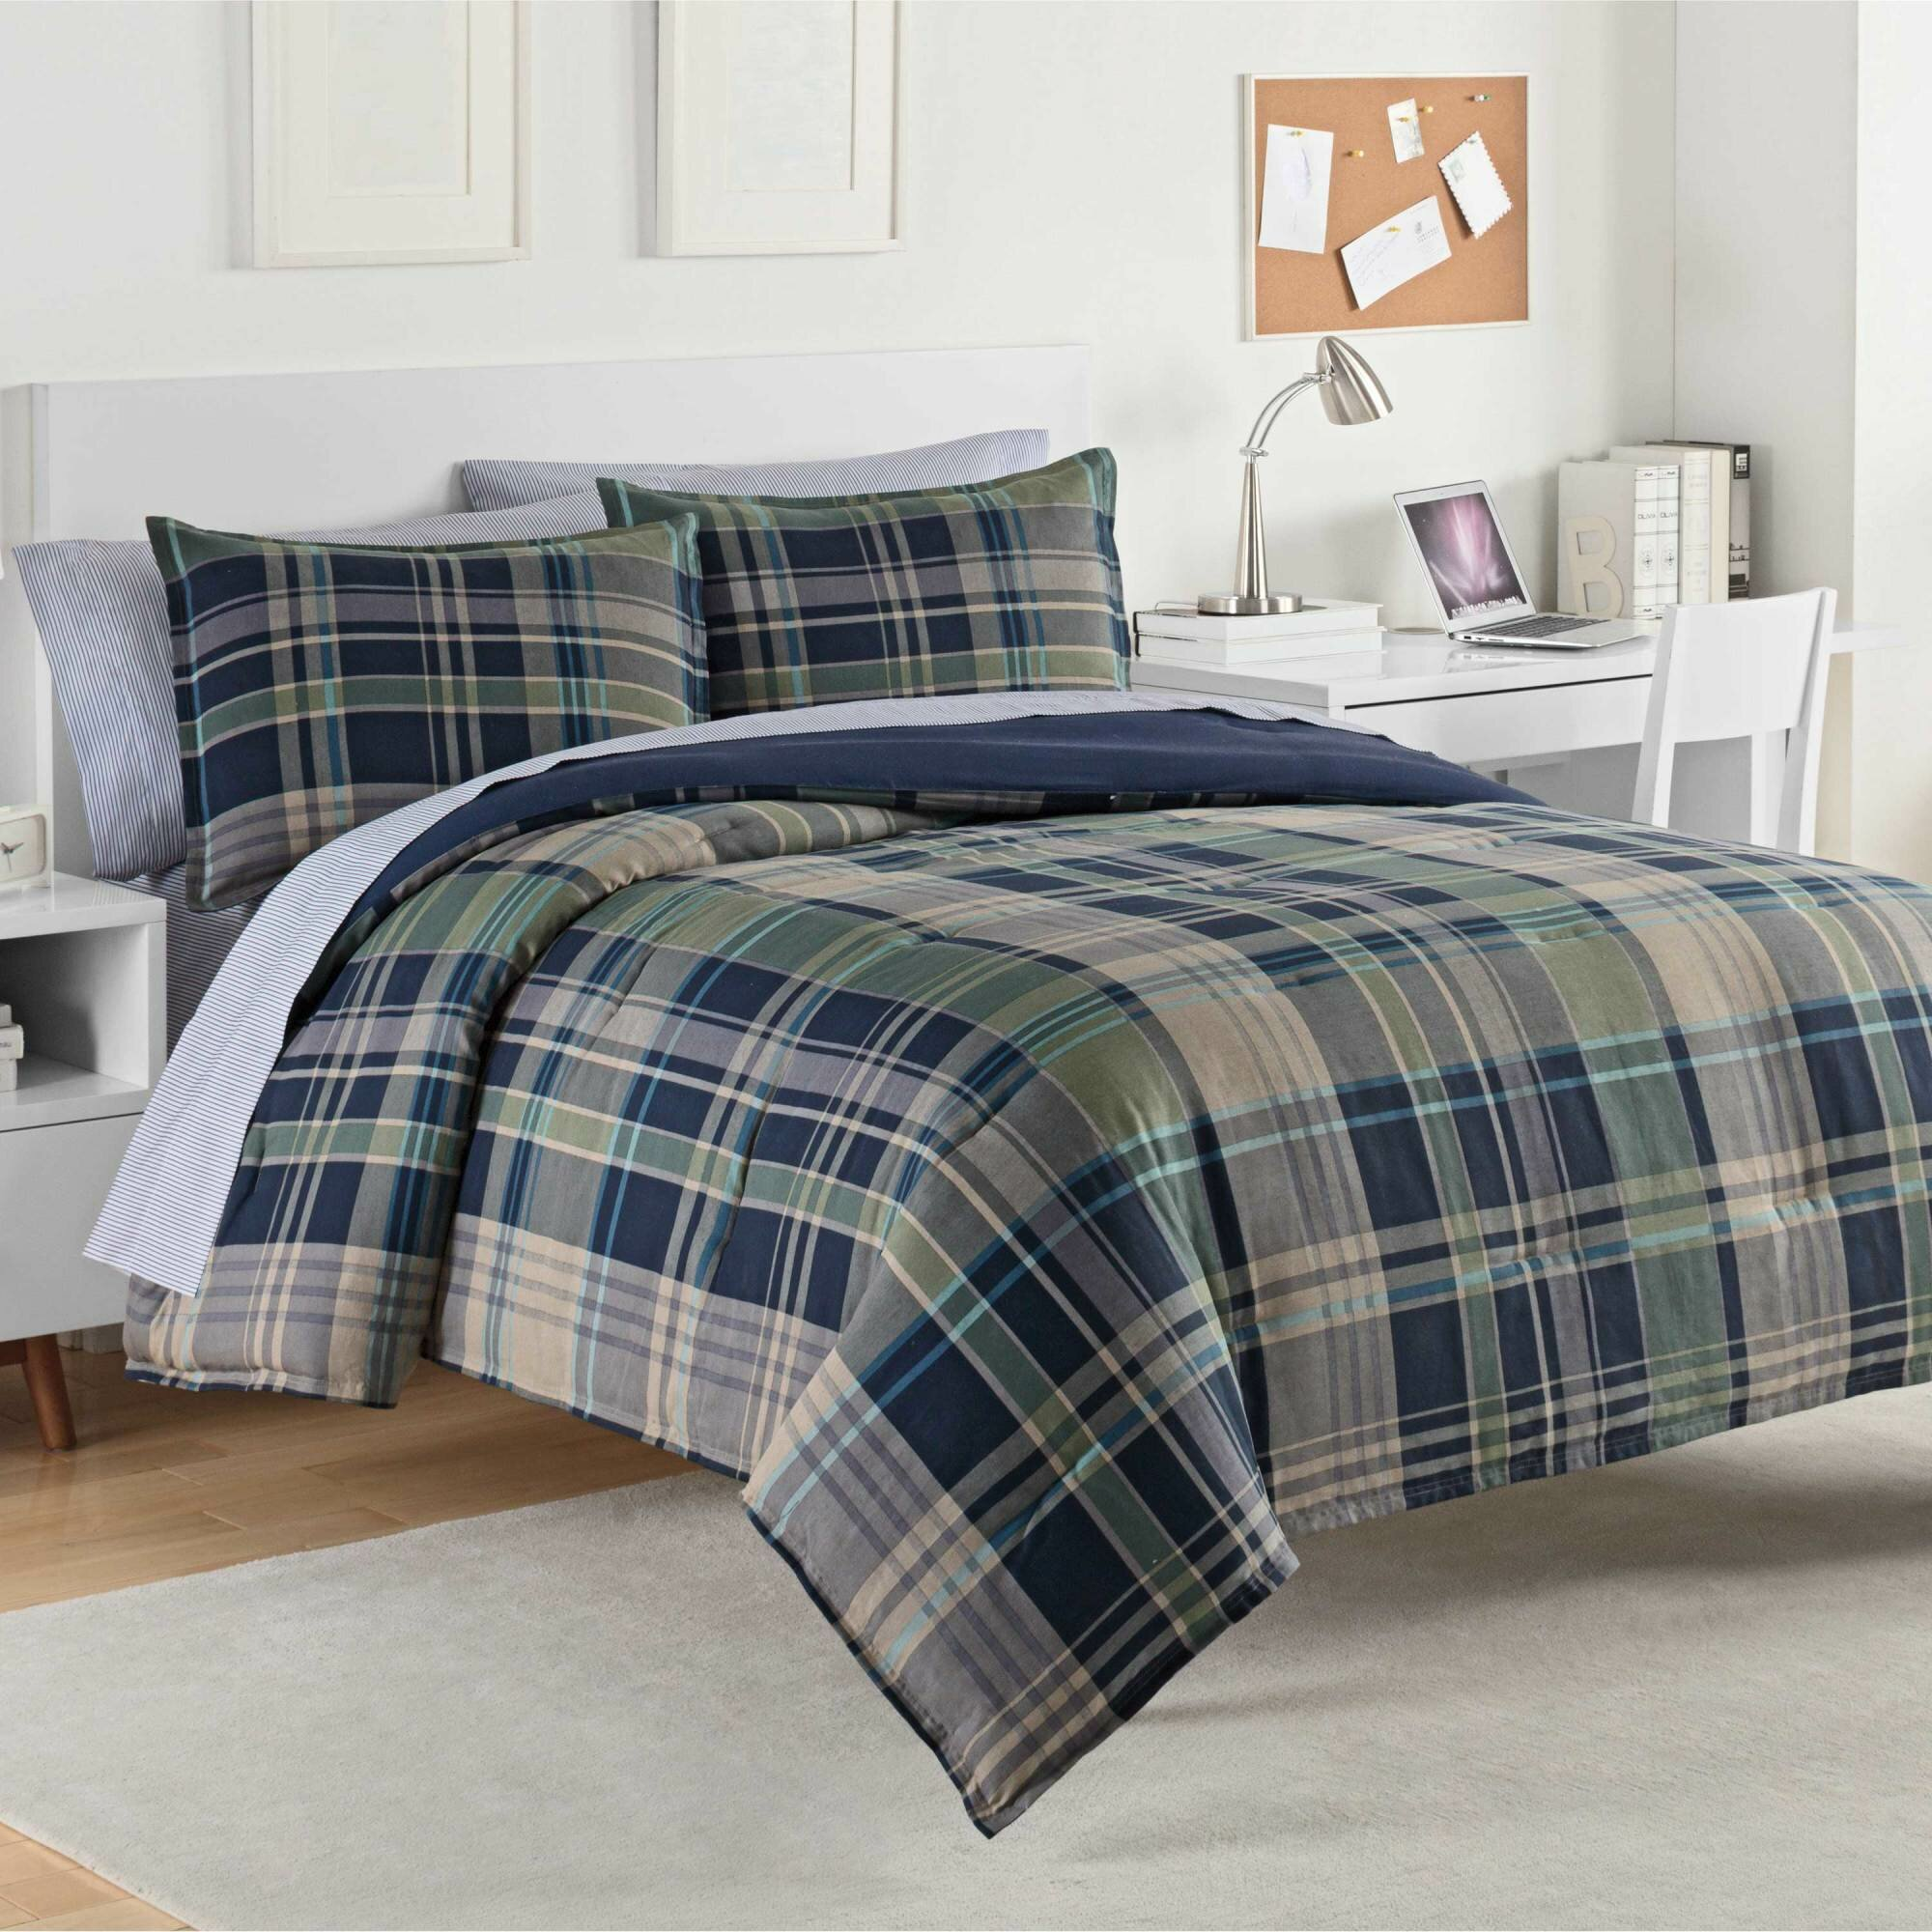 king cotton sets gray size eddie plaid bedding bauer comforter flannel kingston set reversible charcoal queen itm